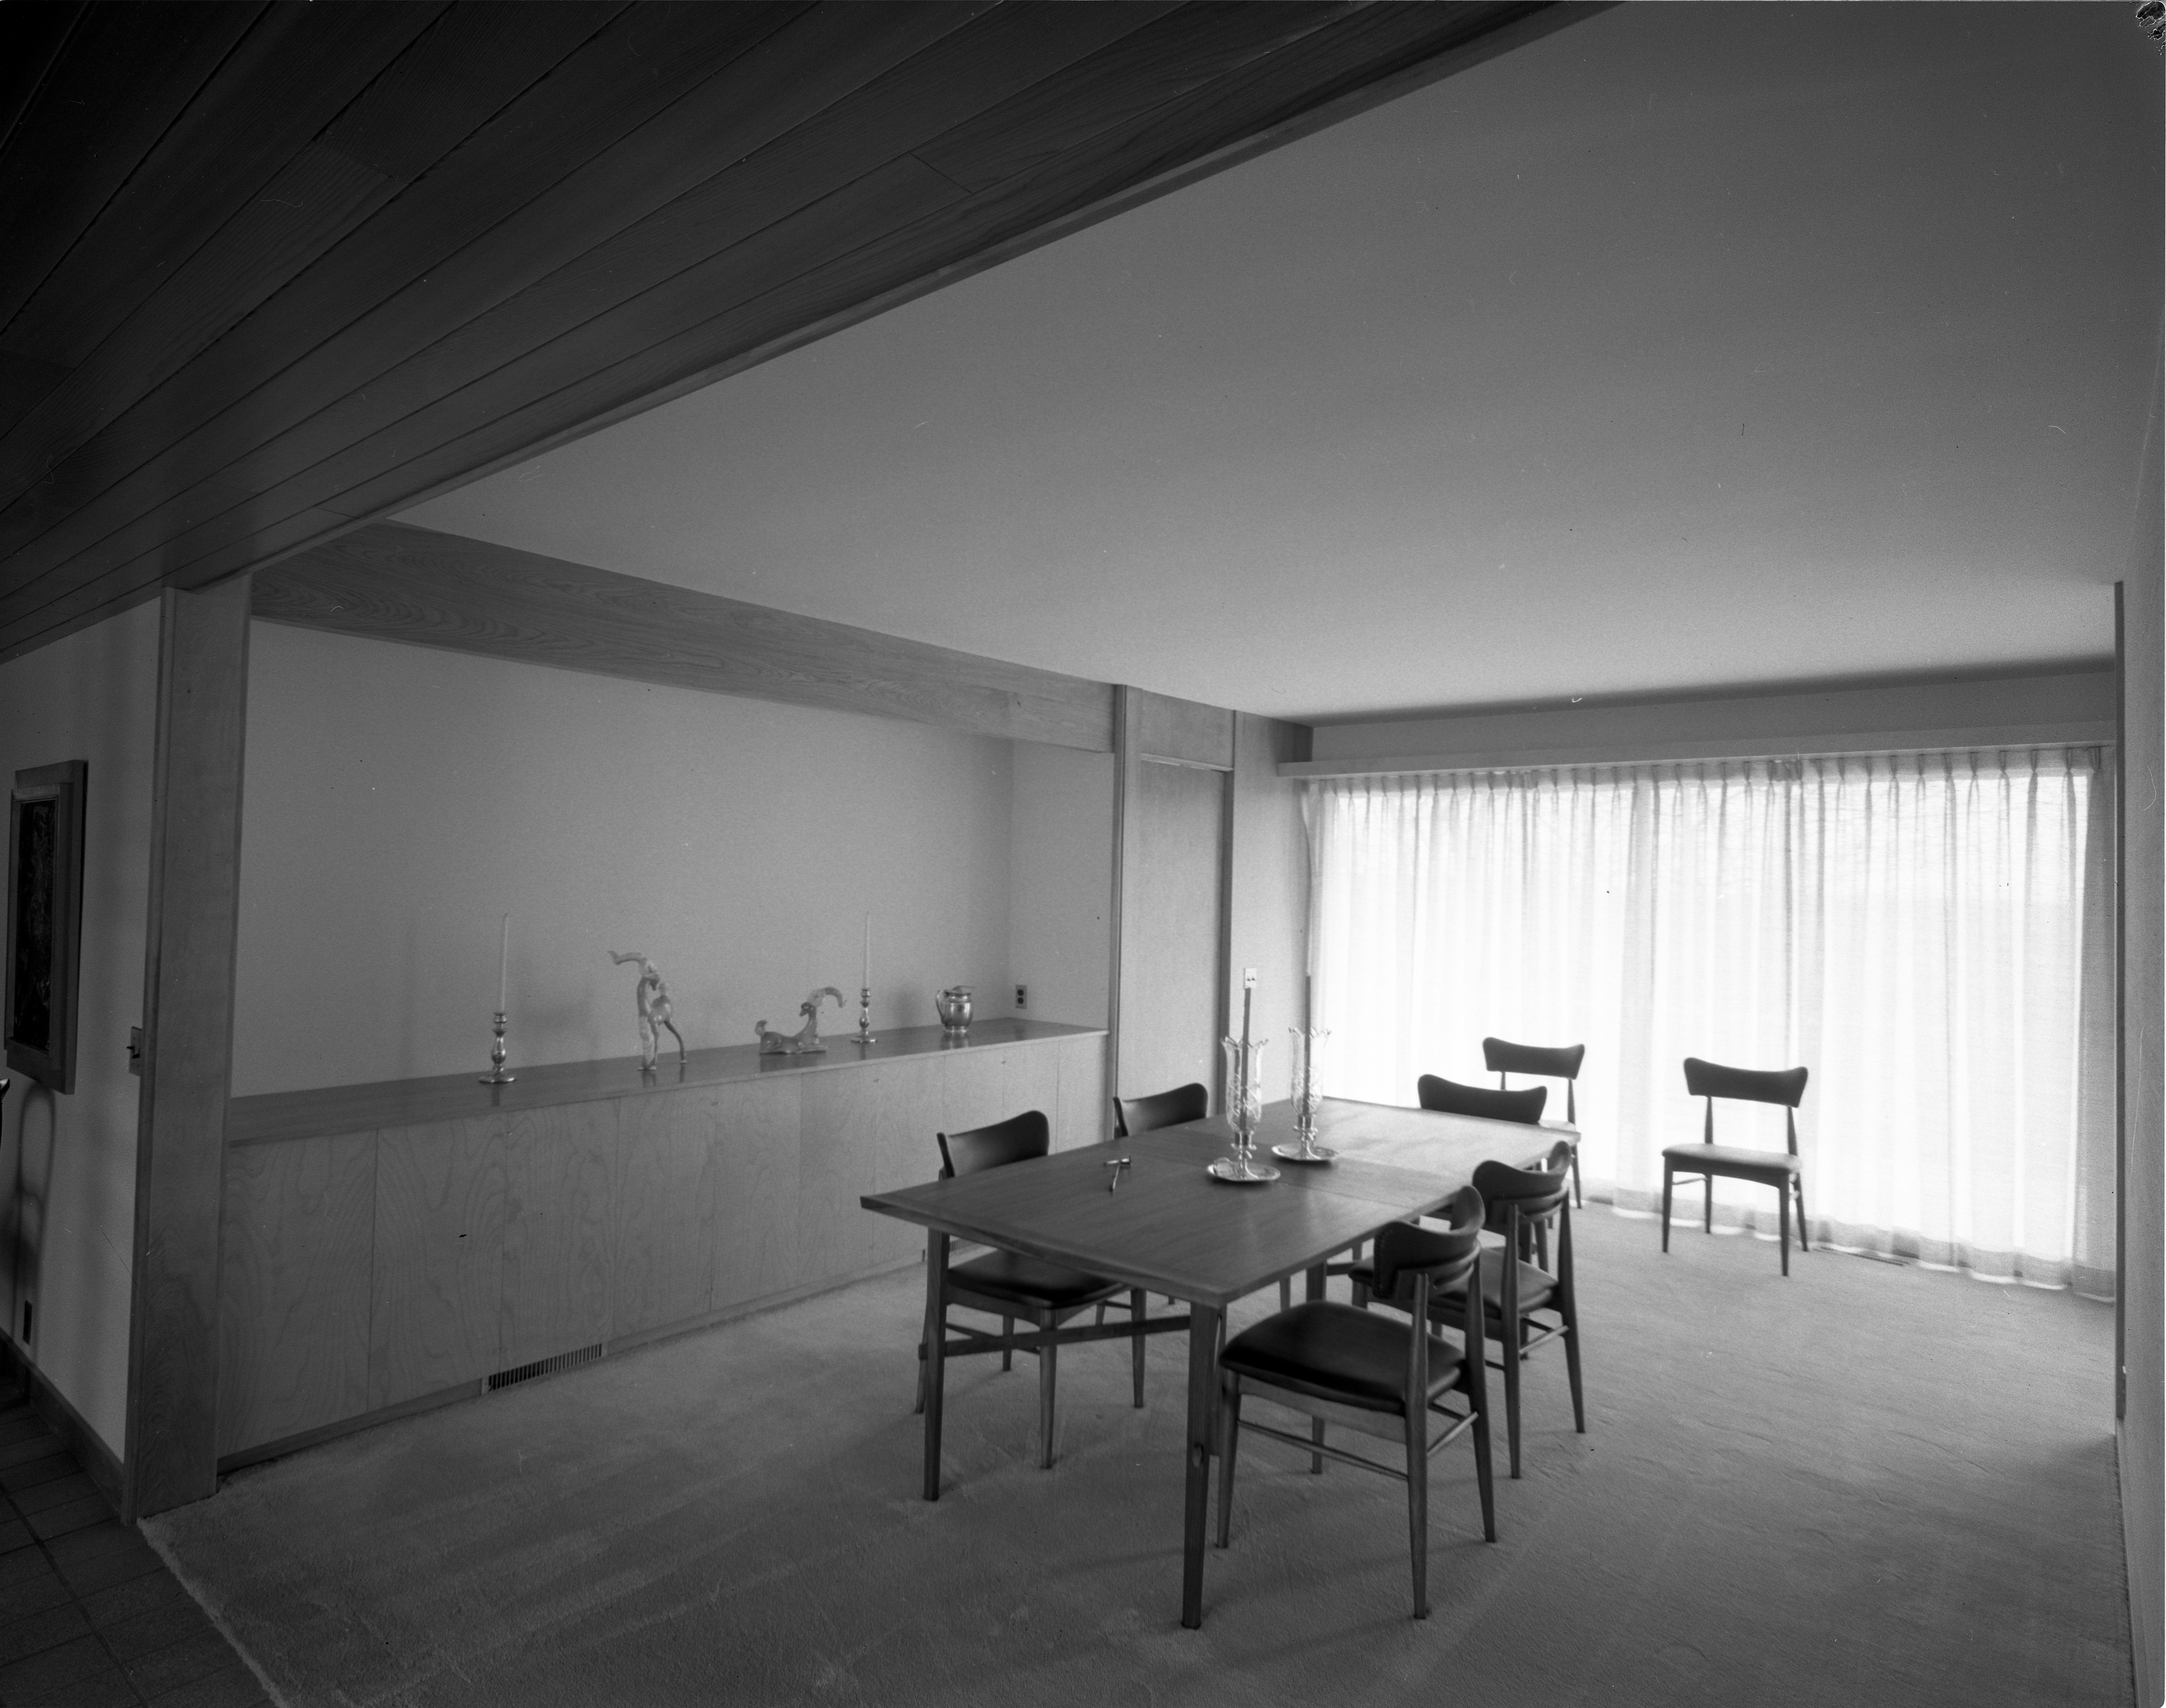 Dining Room In Mid-Century Modern Dingman Home on Chestnut Drive, March 1960 image